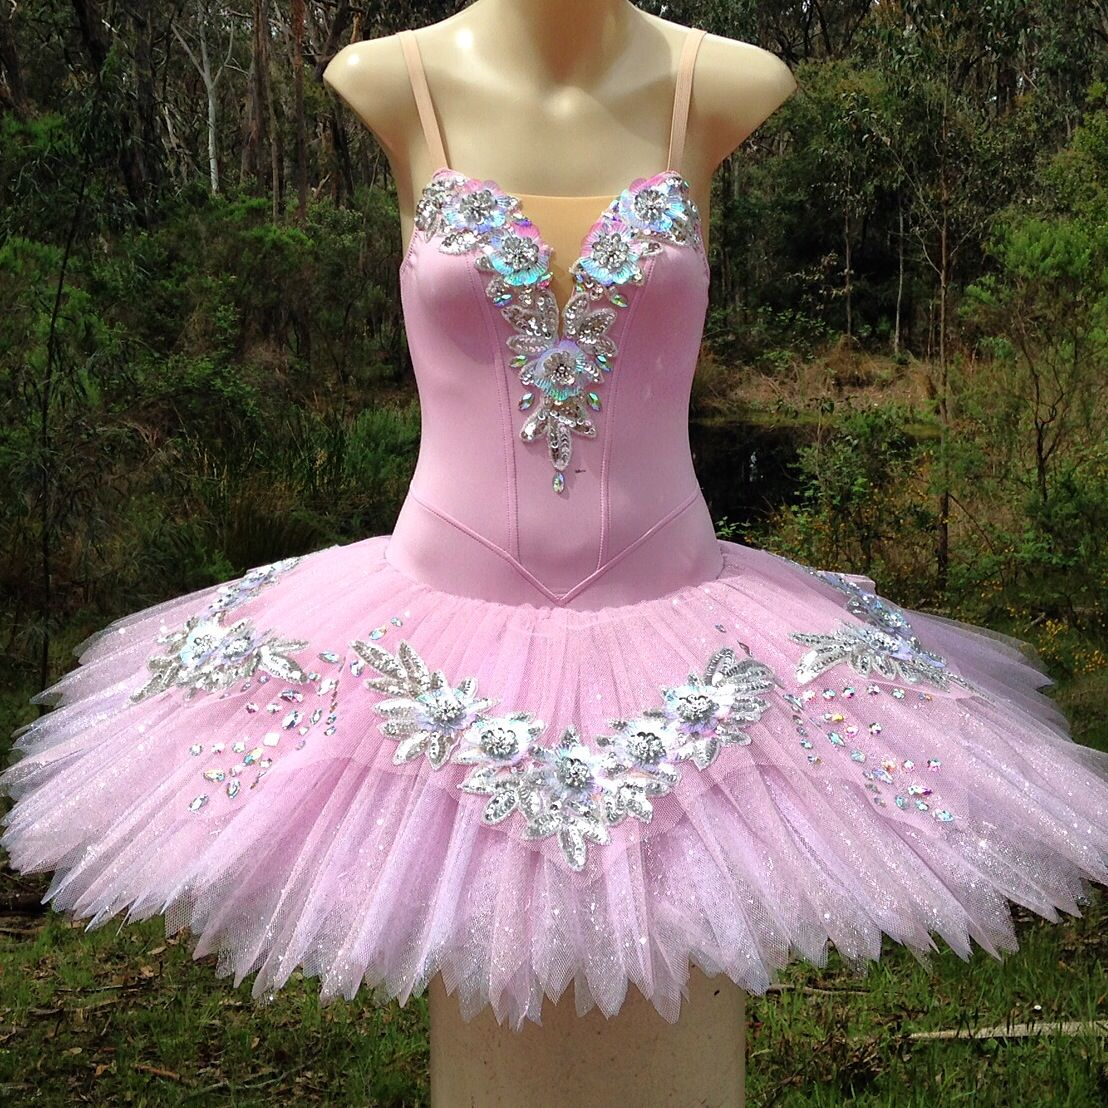 Tutus Tutu: Sugar Plum Fairy Tutu, By Tutus By Dani Australia. Stretch